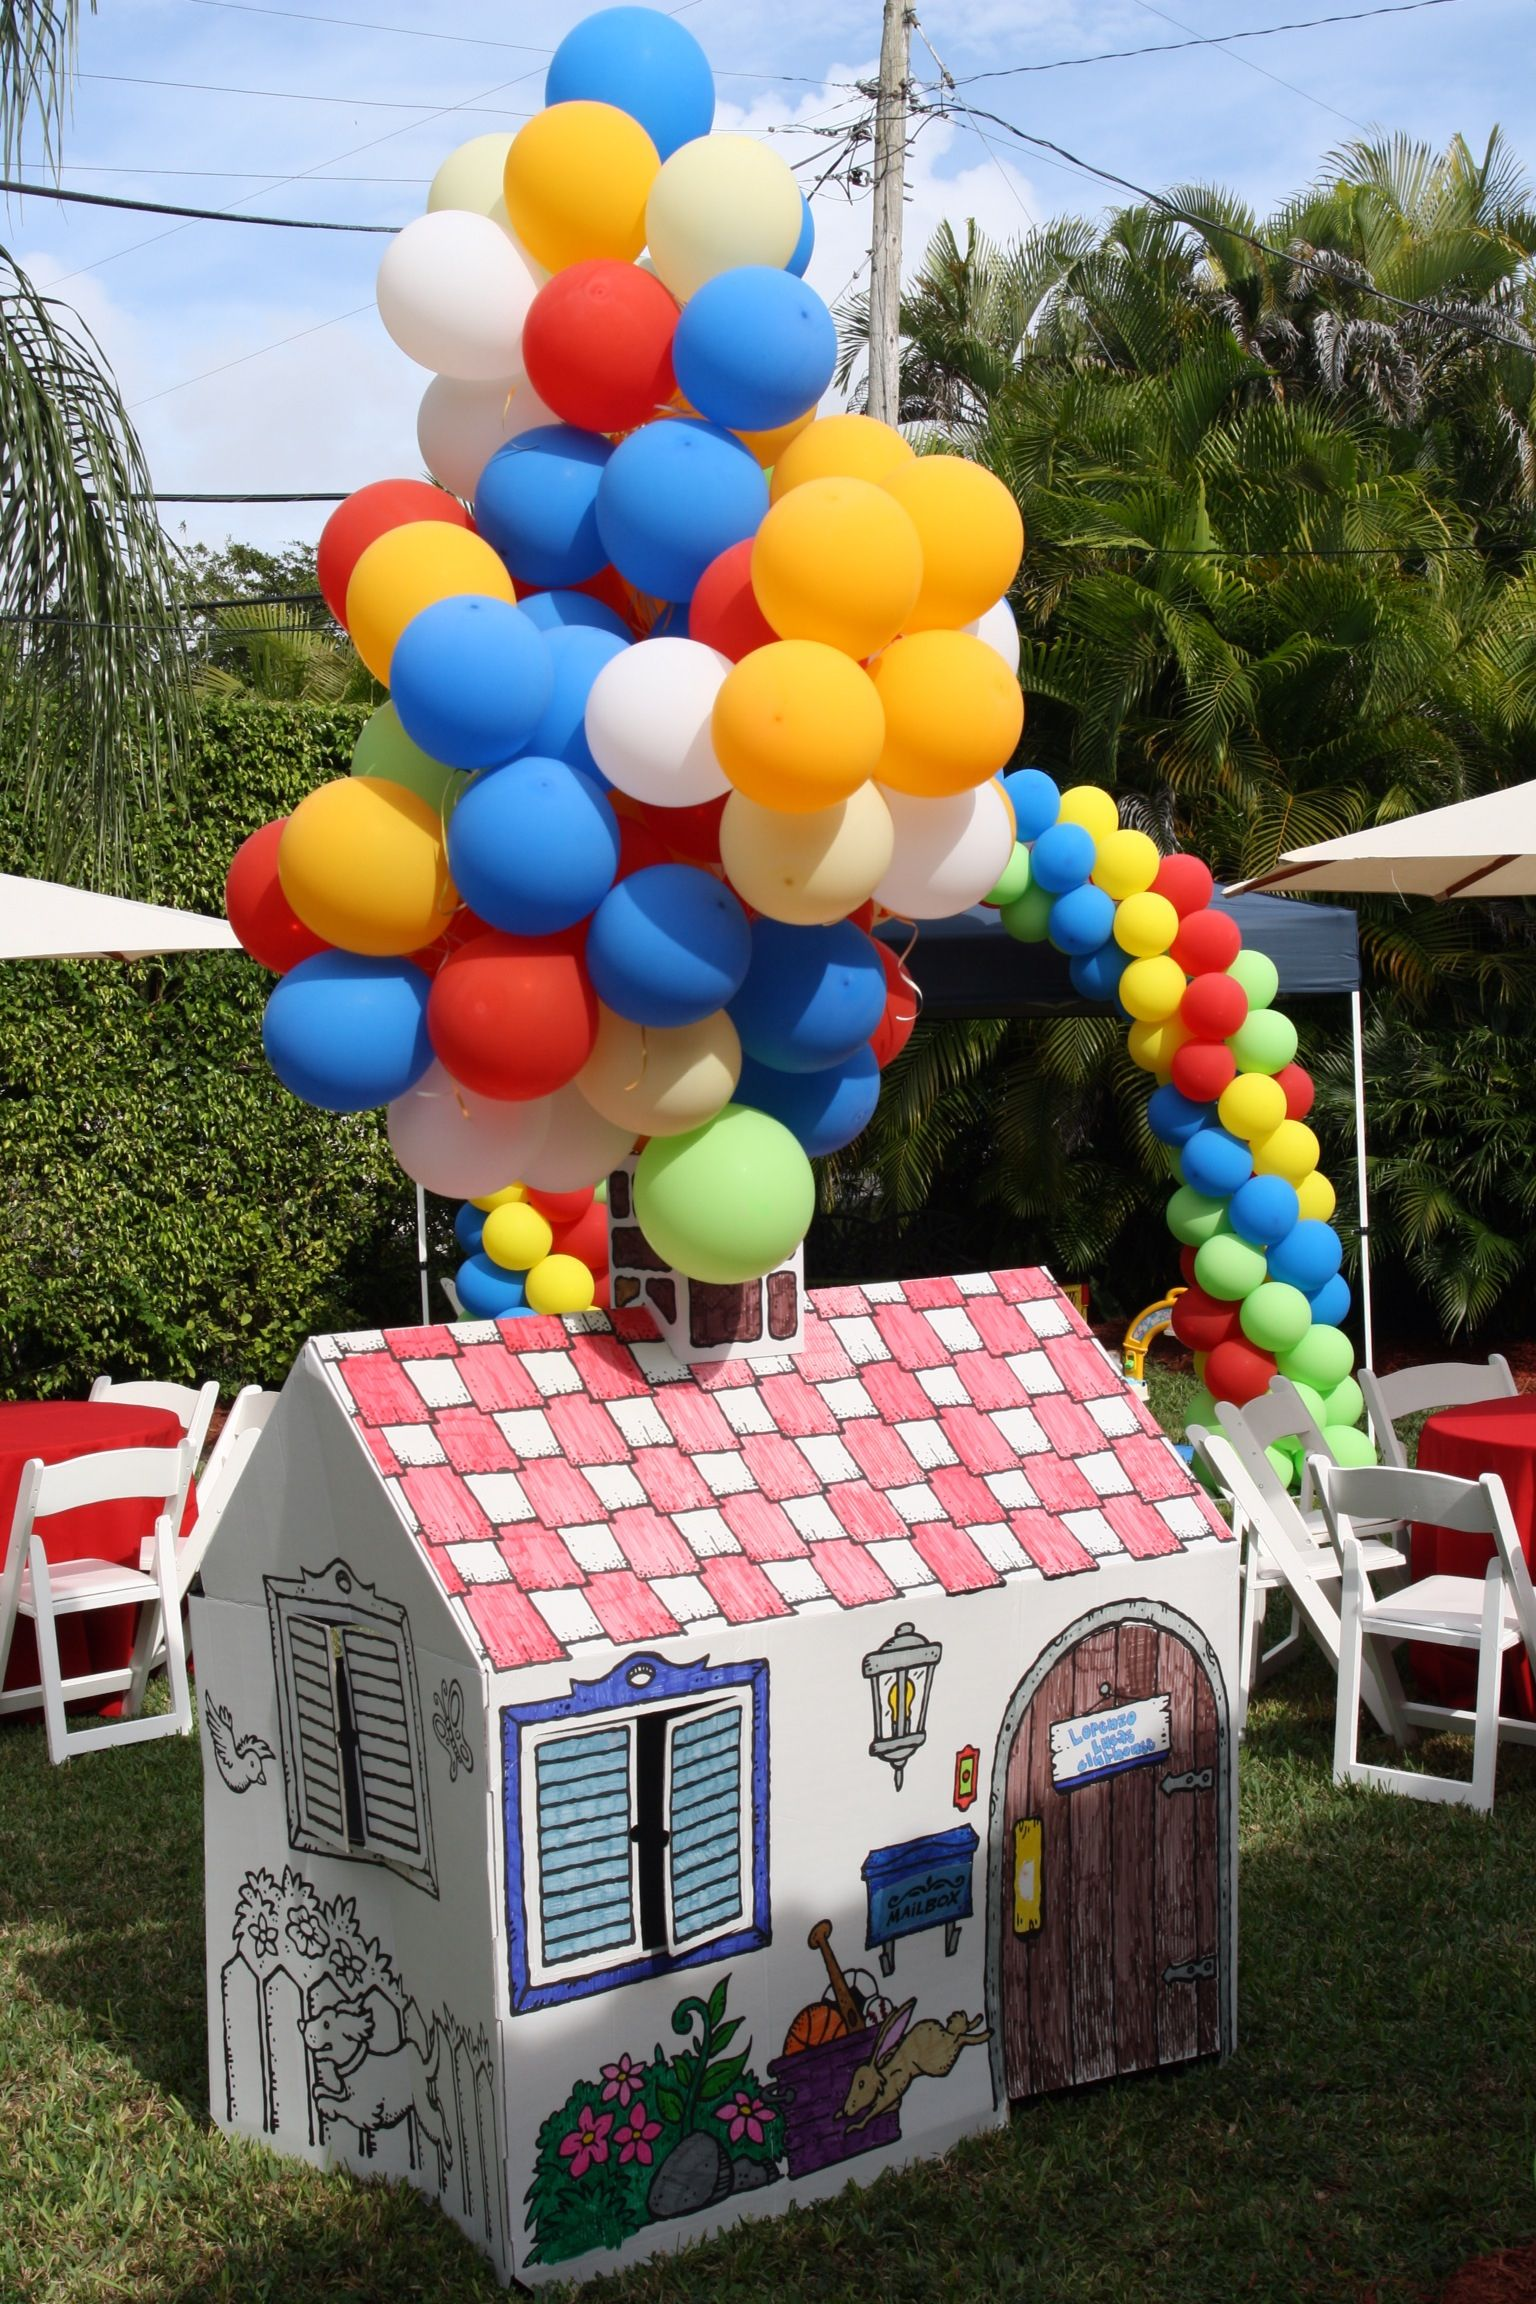 Childrenu0027s playhouse inspired by the movie up